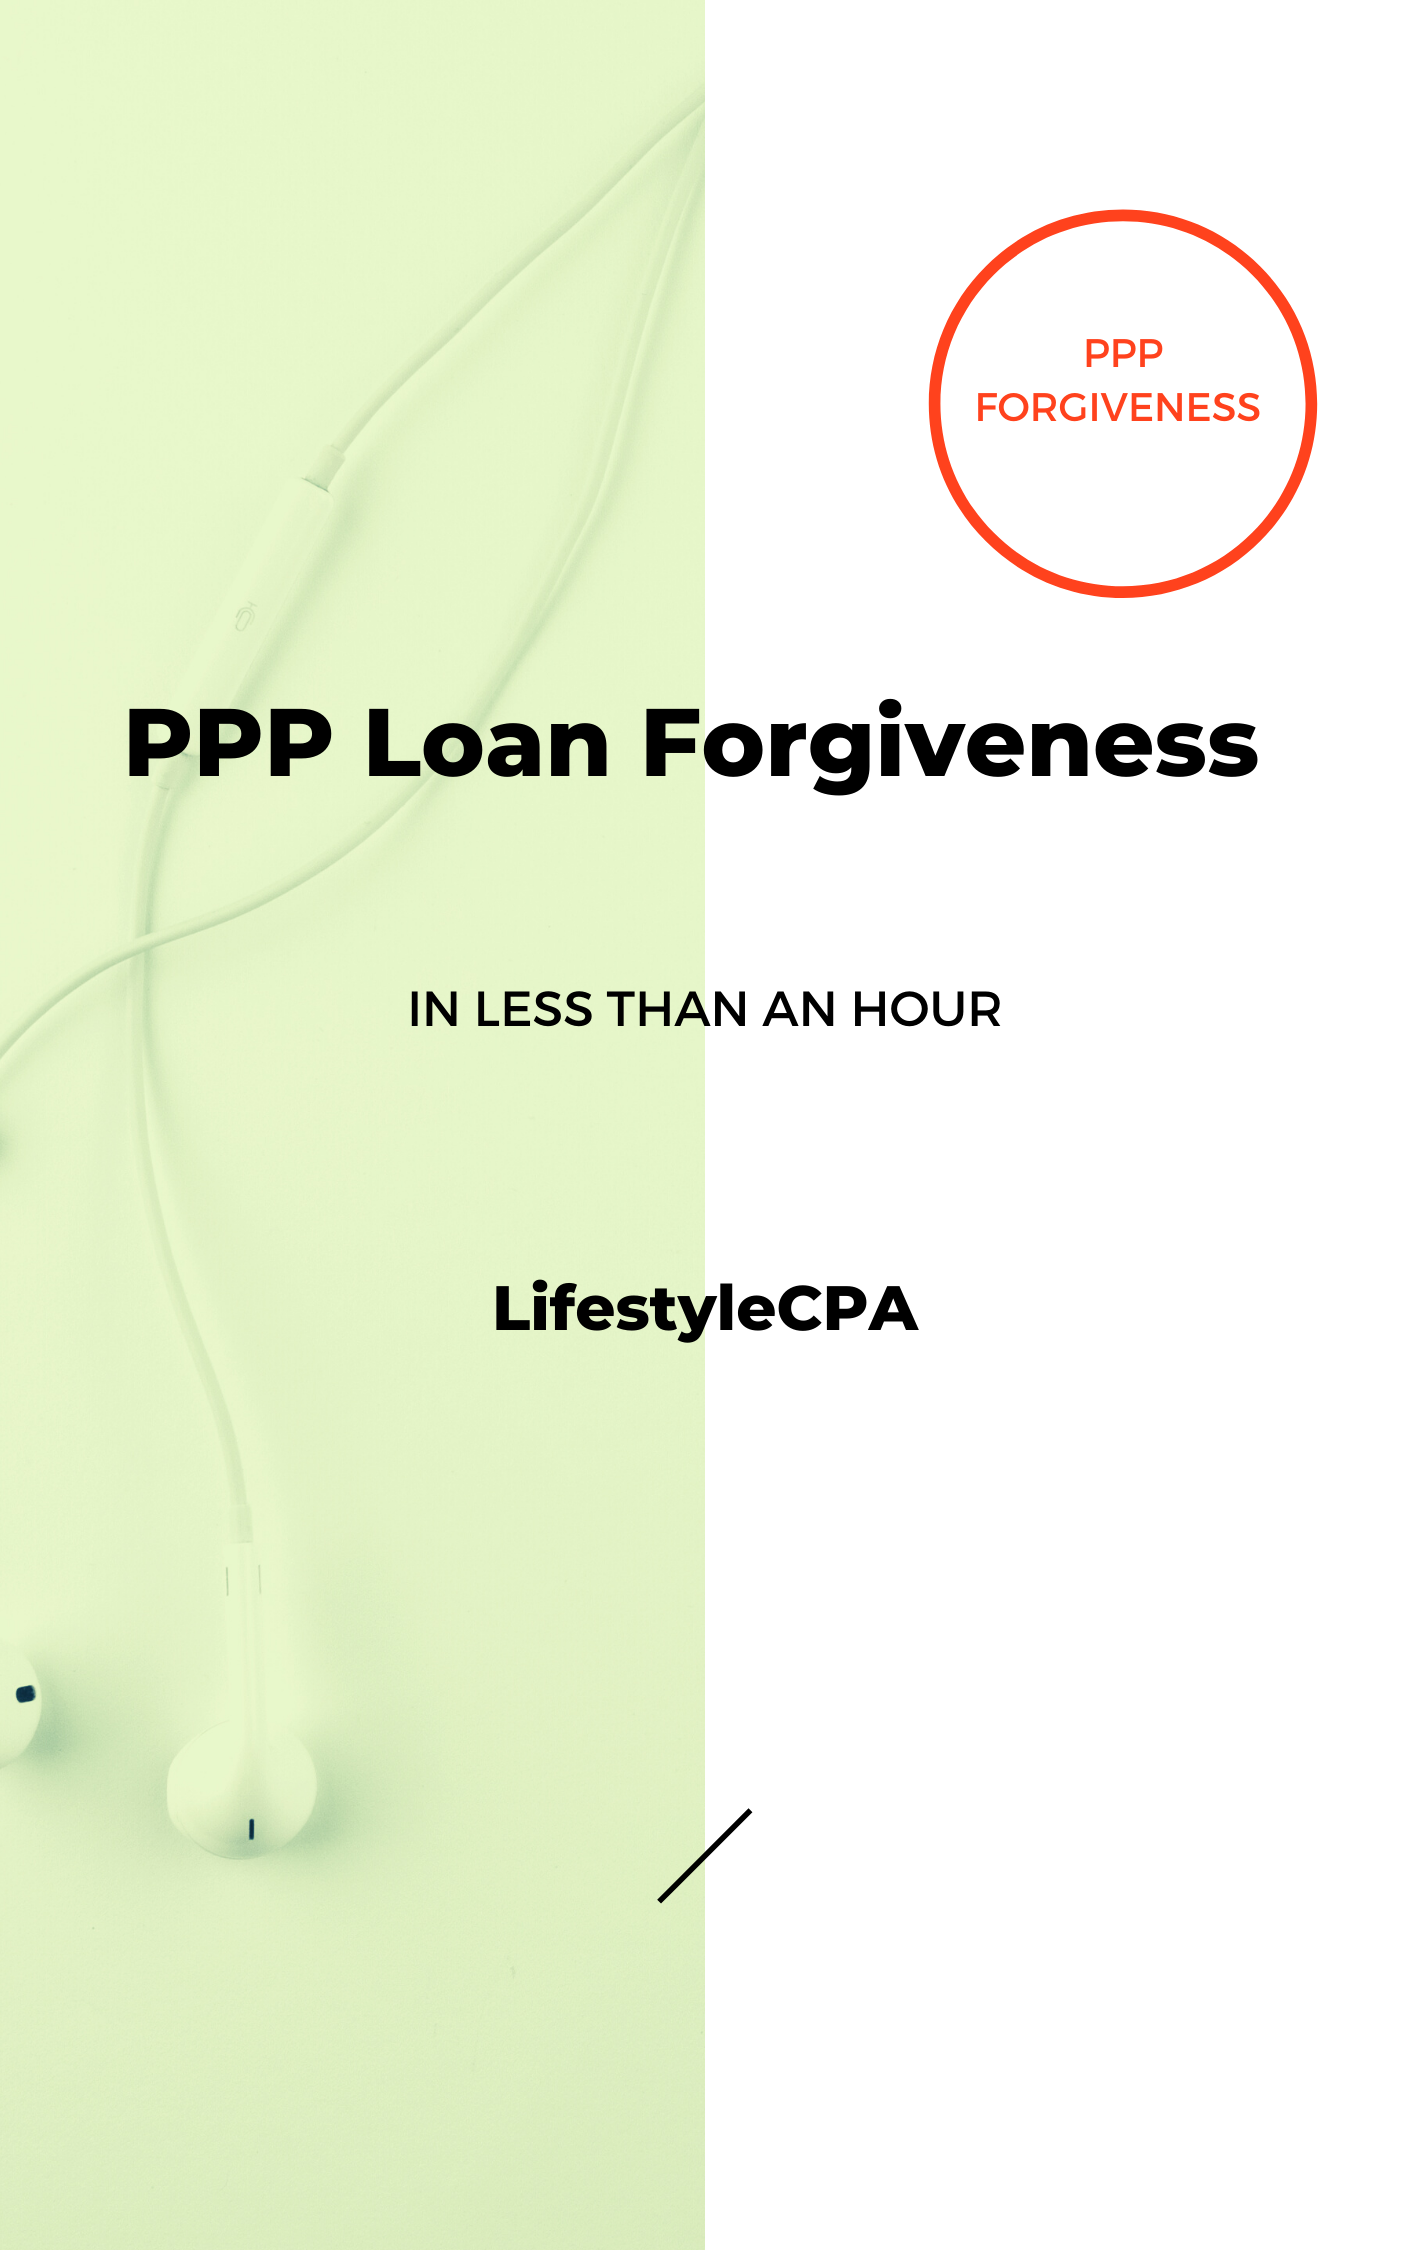 Completing the PPP Loan forgiveness application in less than an hour